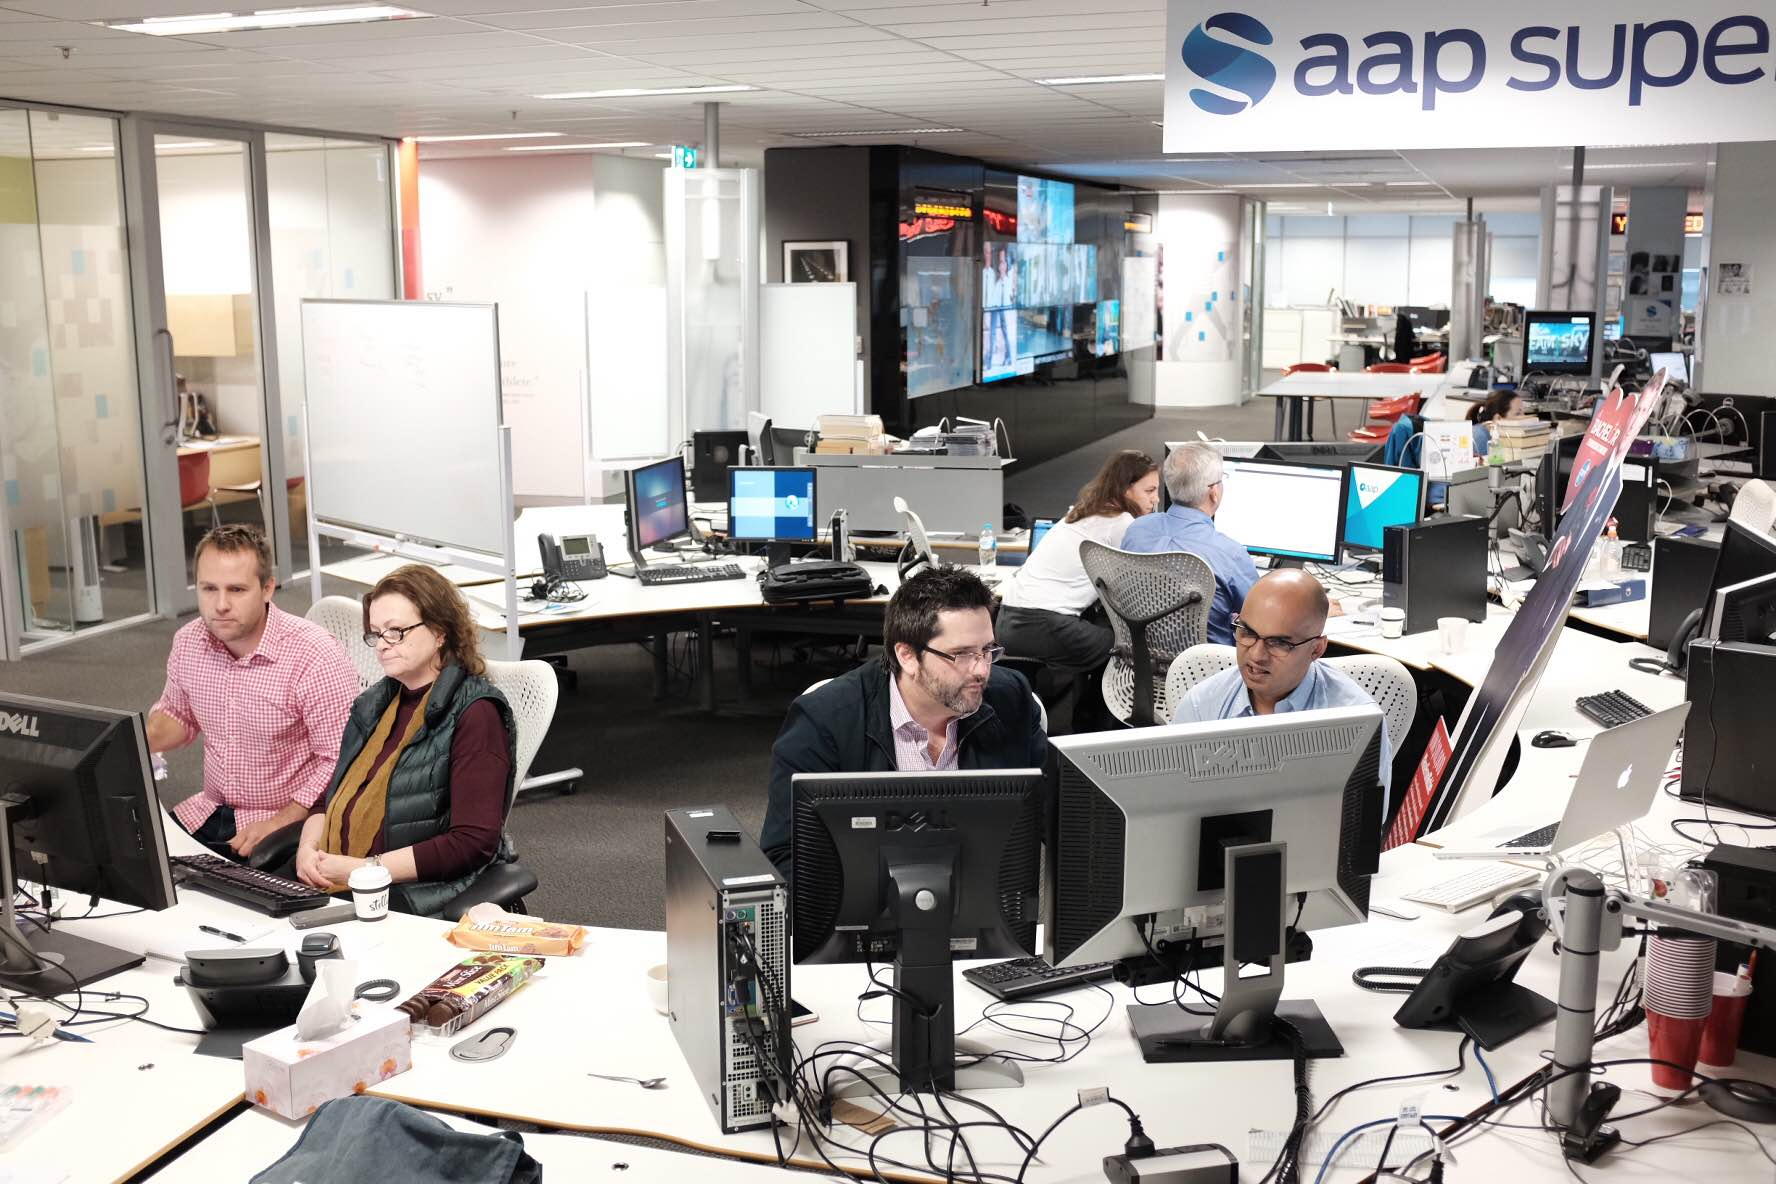 AAP journalists have created a new tool, called Agenda, that works with Superdesk to streamline editorial planning for client newsrooms.